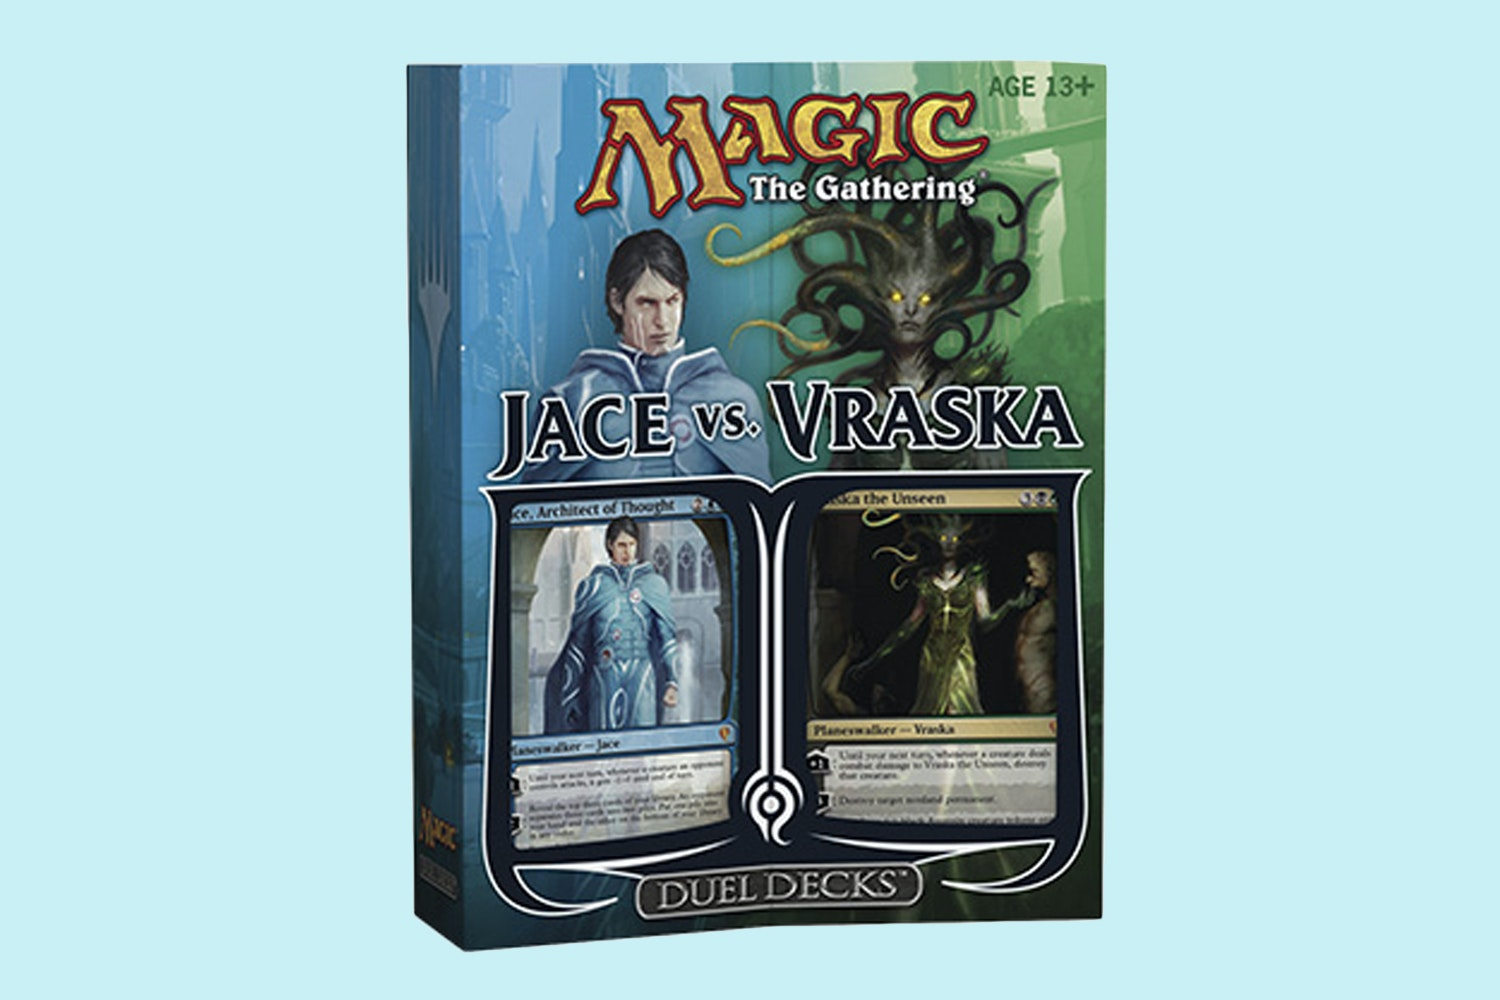 Magic: the Gathering Duel Decks (5-Pack)